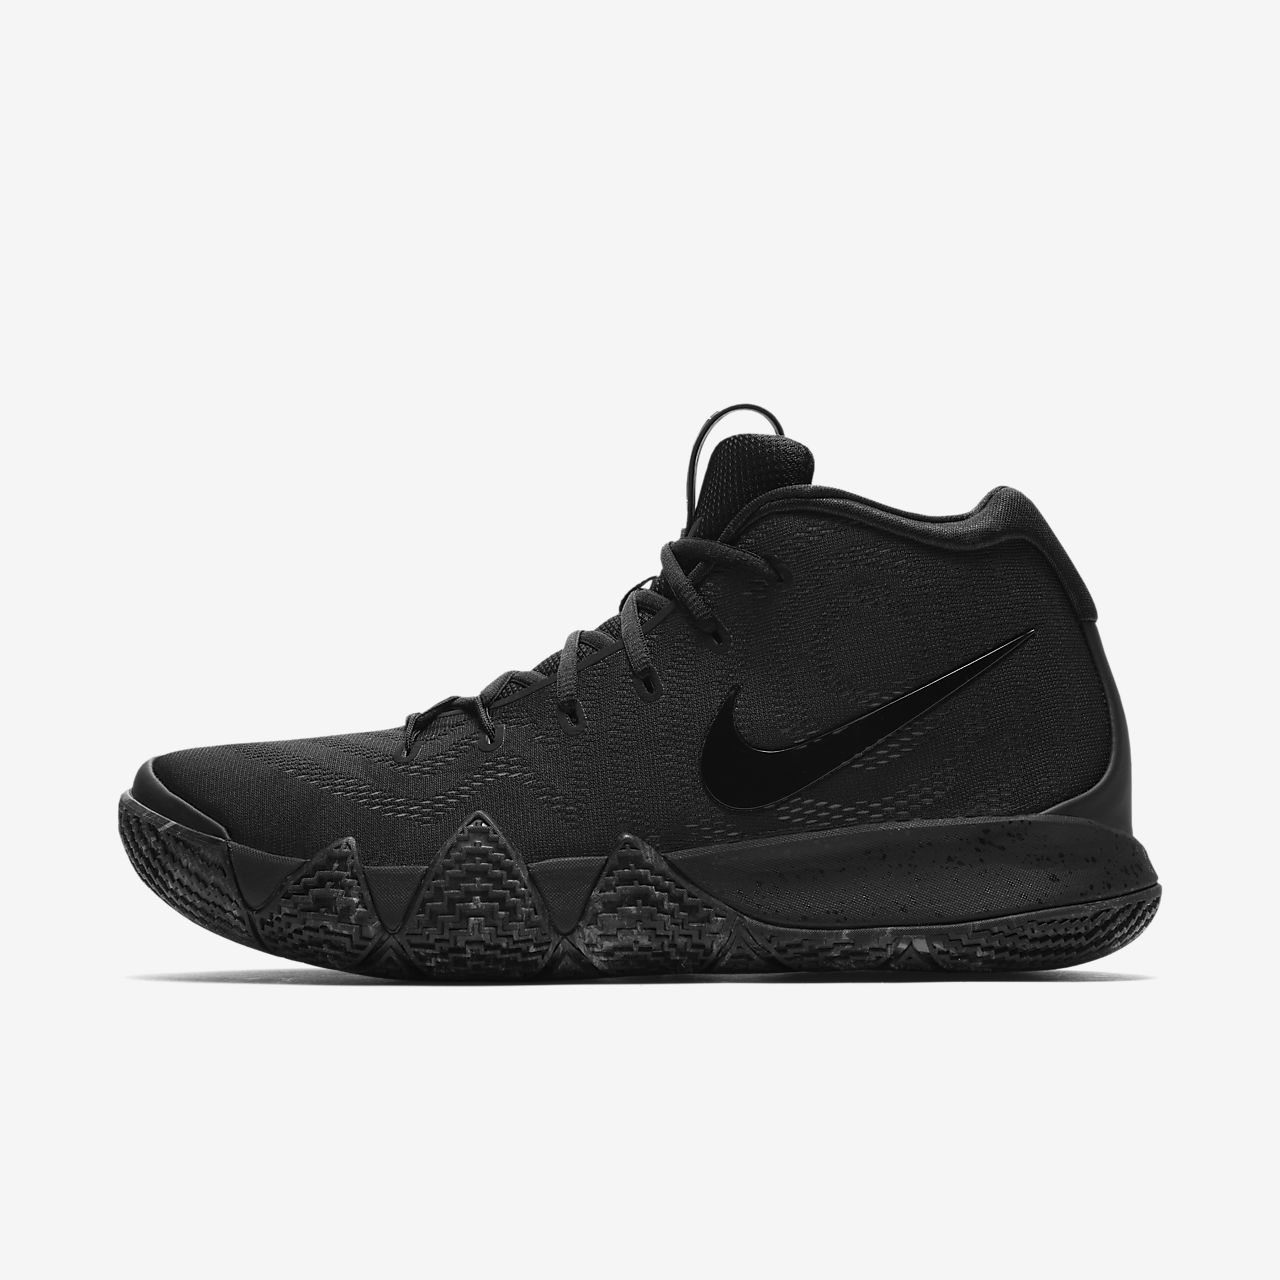 1ff31b45a2 Kyrie 4 Basketball Shoe. Nike.com NZ